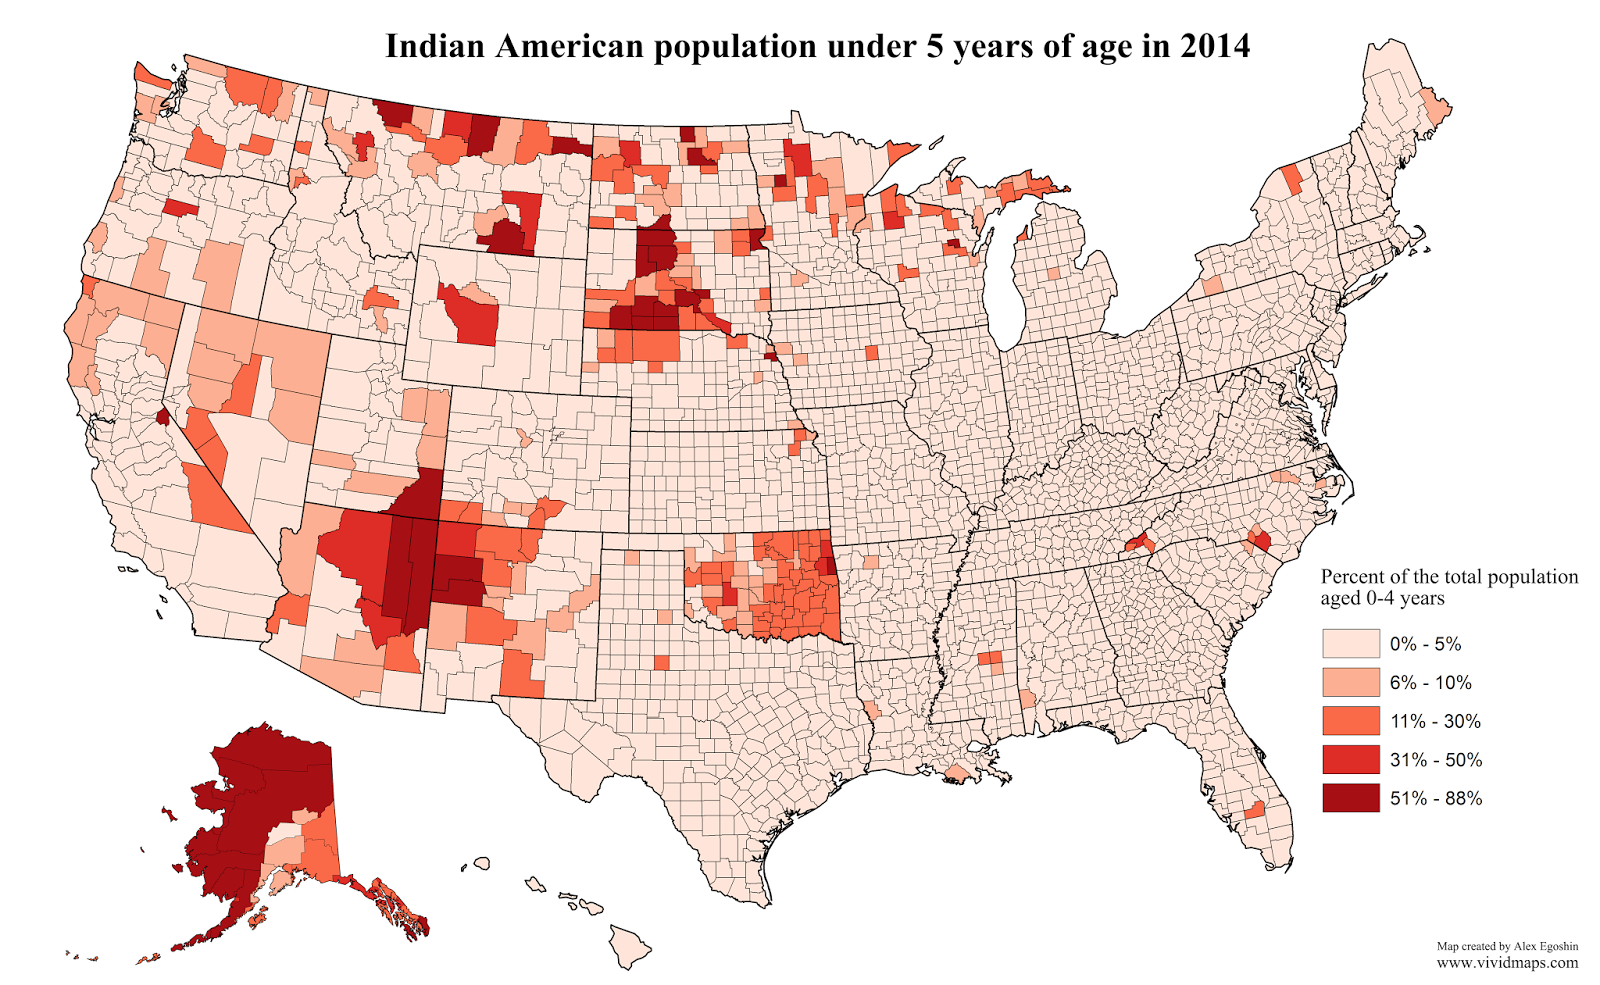 Indian American population under 5 years of age in 2014